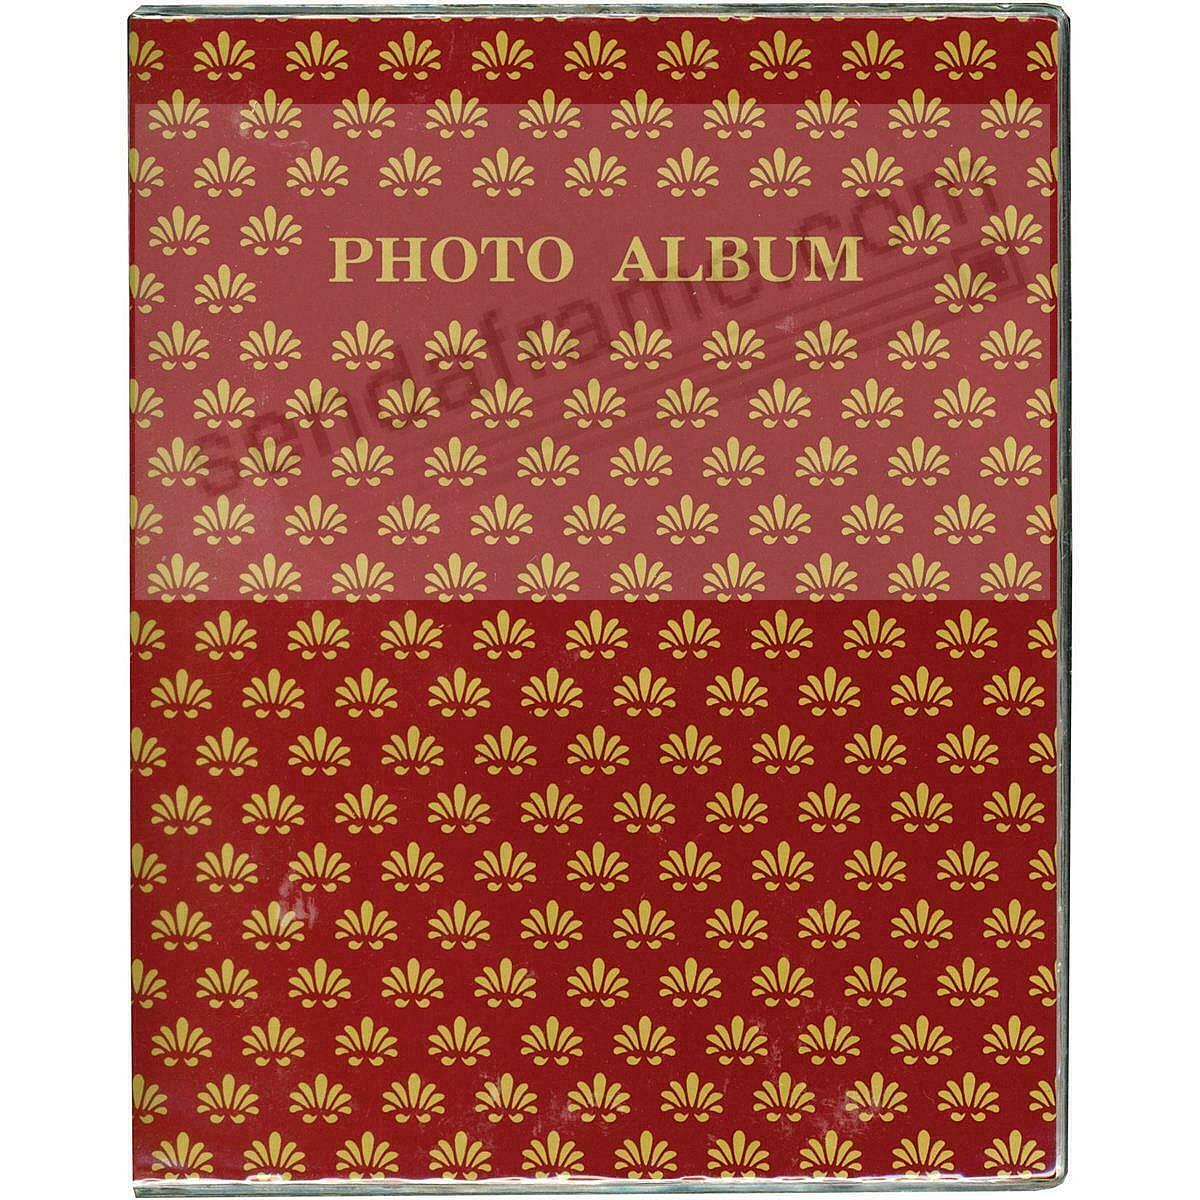 BURGUNDY Proof style 2-up photo book holds 64 prints (3pc bundle priced)